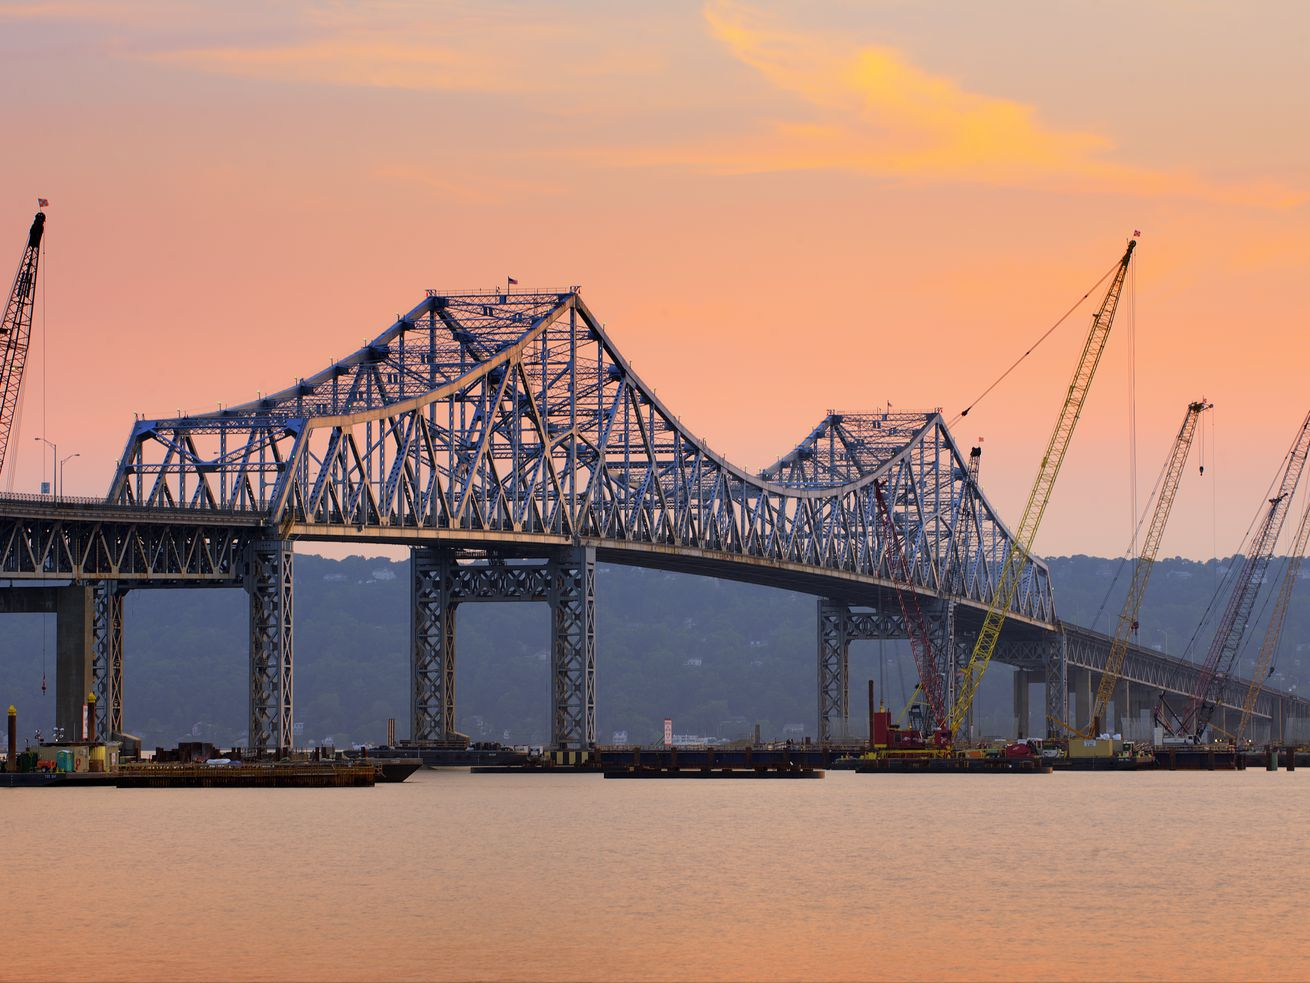 Tappan Zee Bridge connecting Tarrytown in Westchester and Nyack in Rockland County.